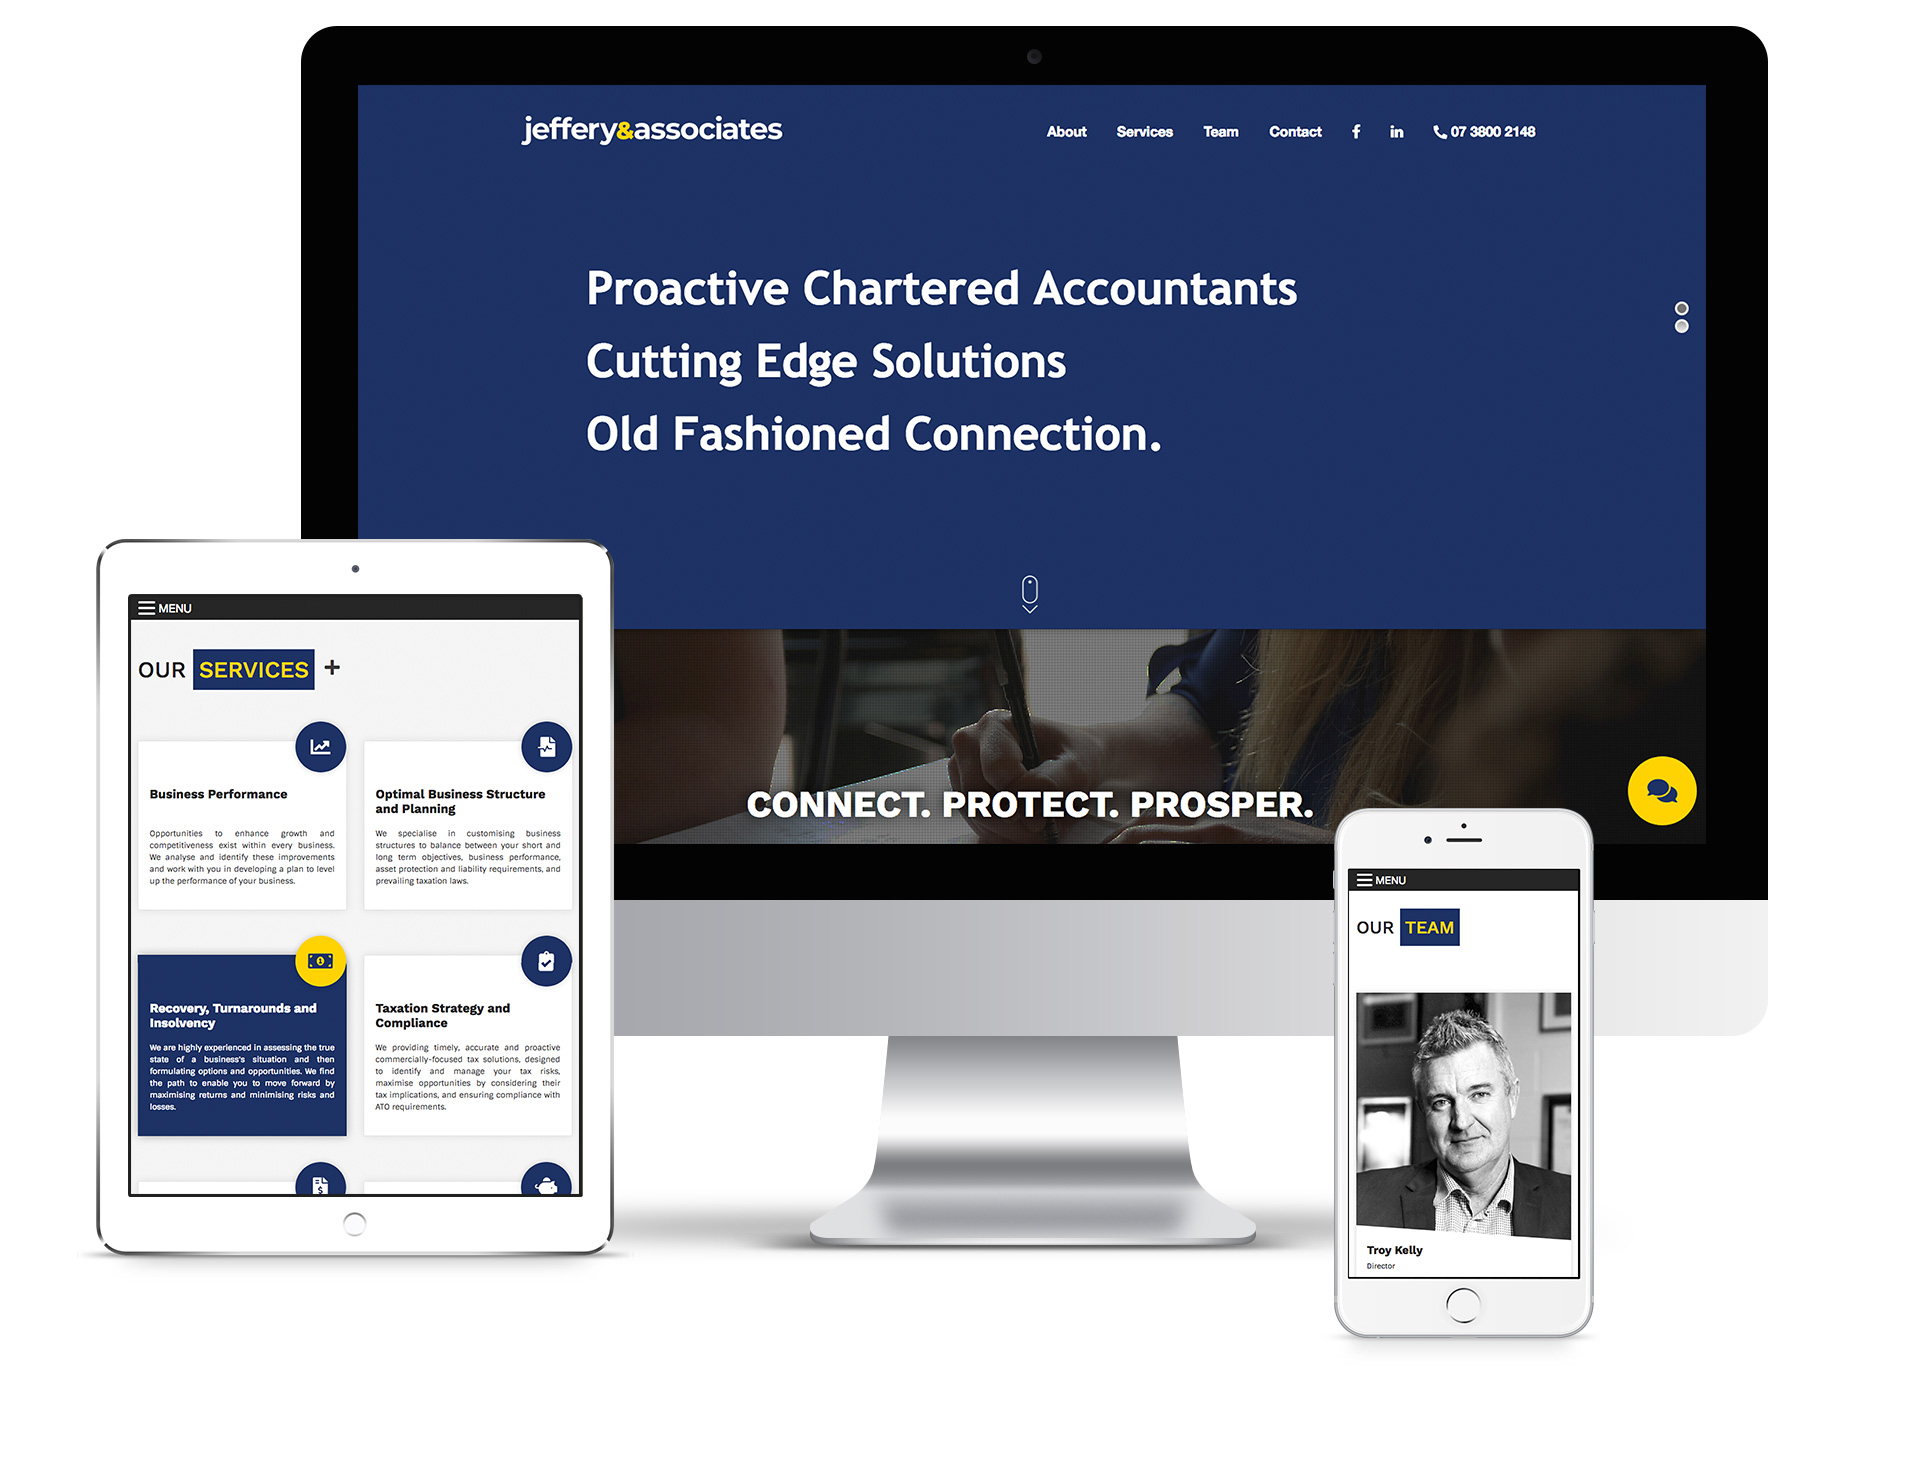 jeffery-associates-website-design-byron-bay-robert-mullineux